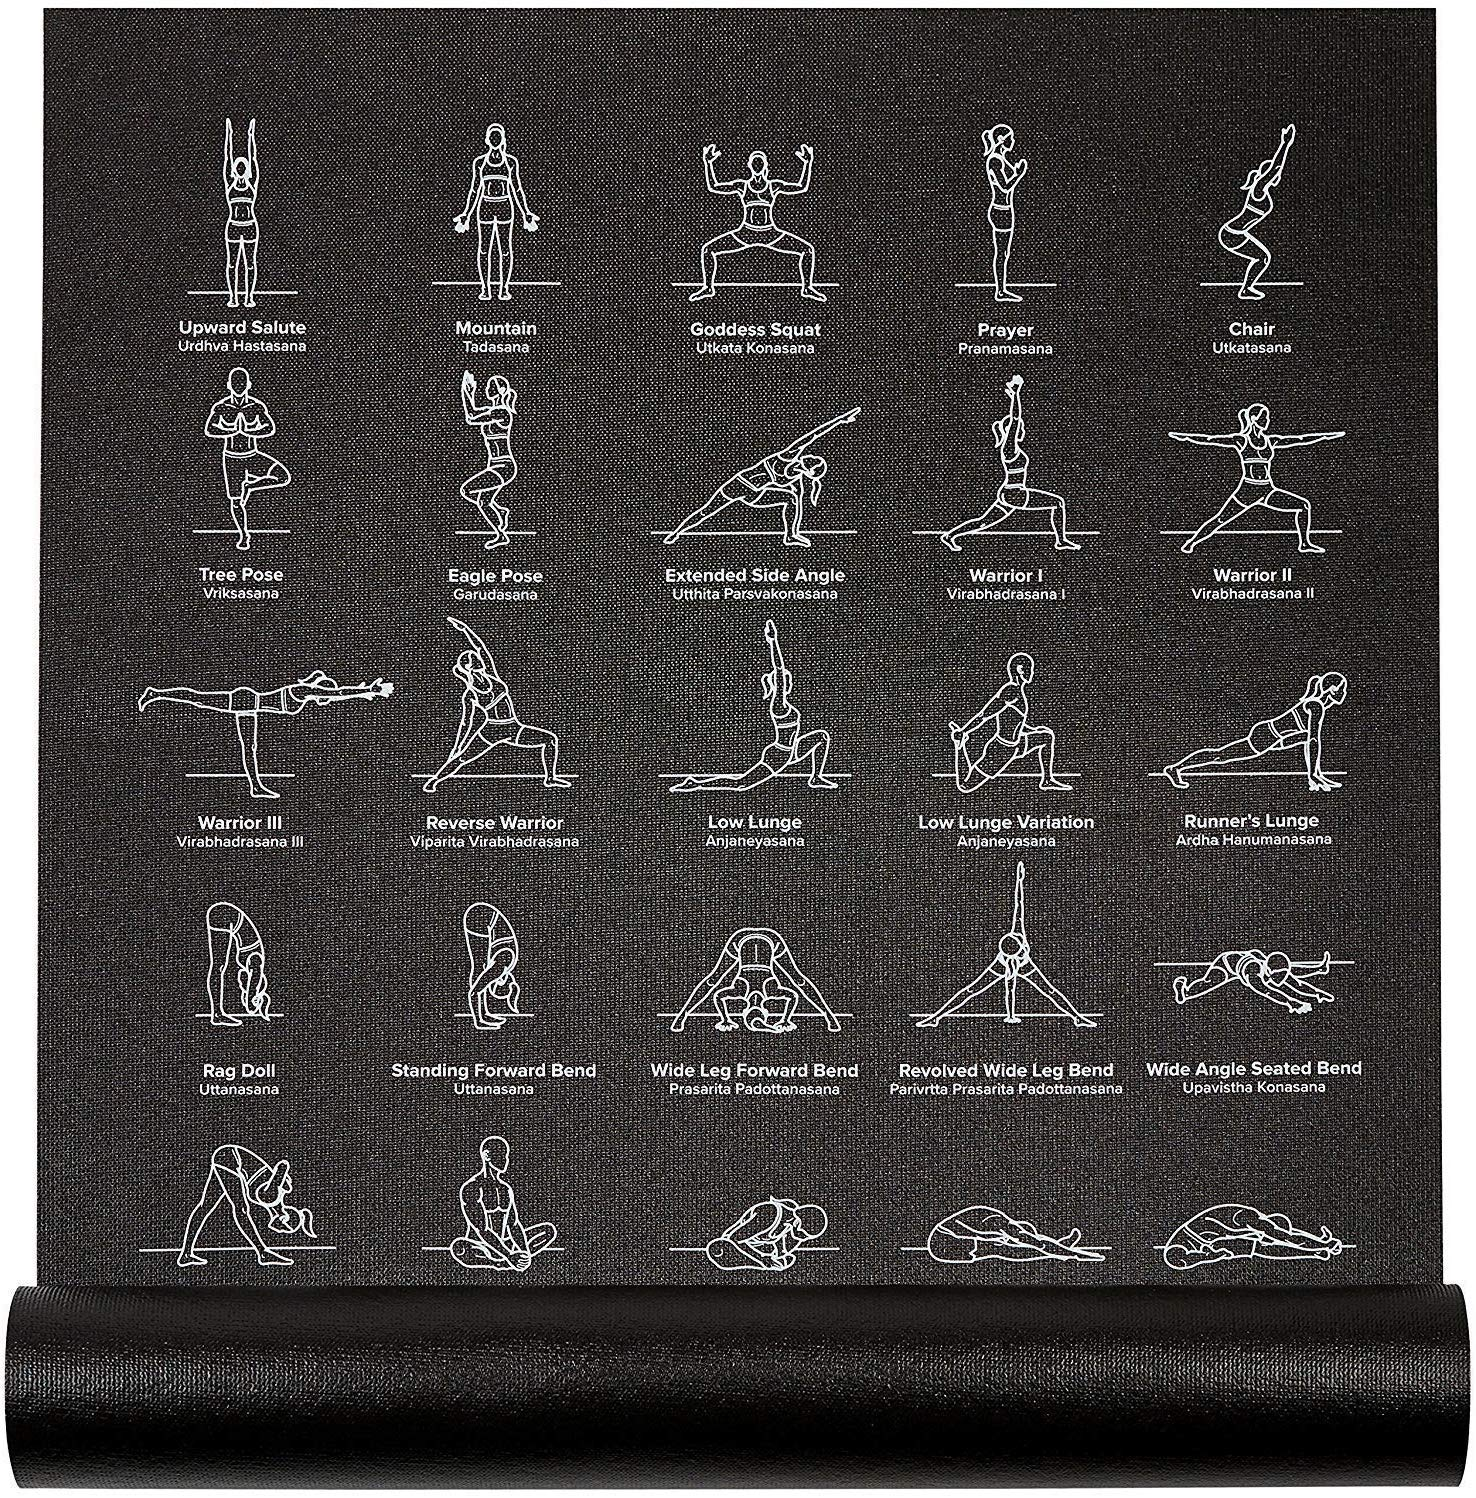 NewMe Fitness Instructional Yoga Mat Printed w 70 Illustrated Poses, 24 Wide x 68 Long